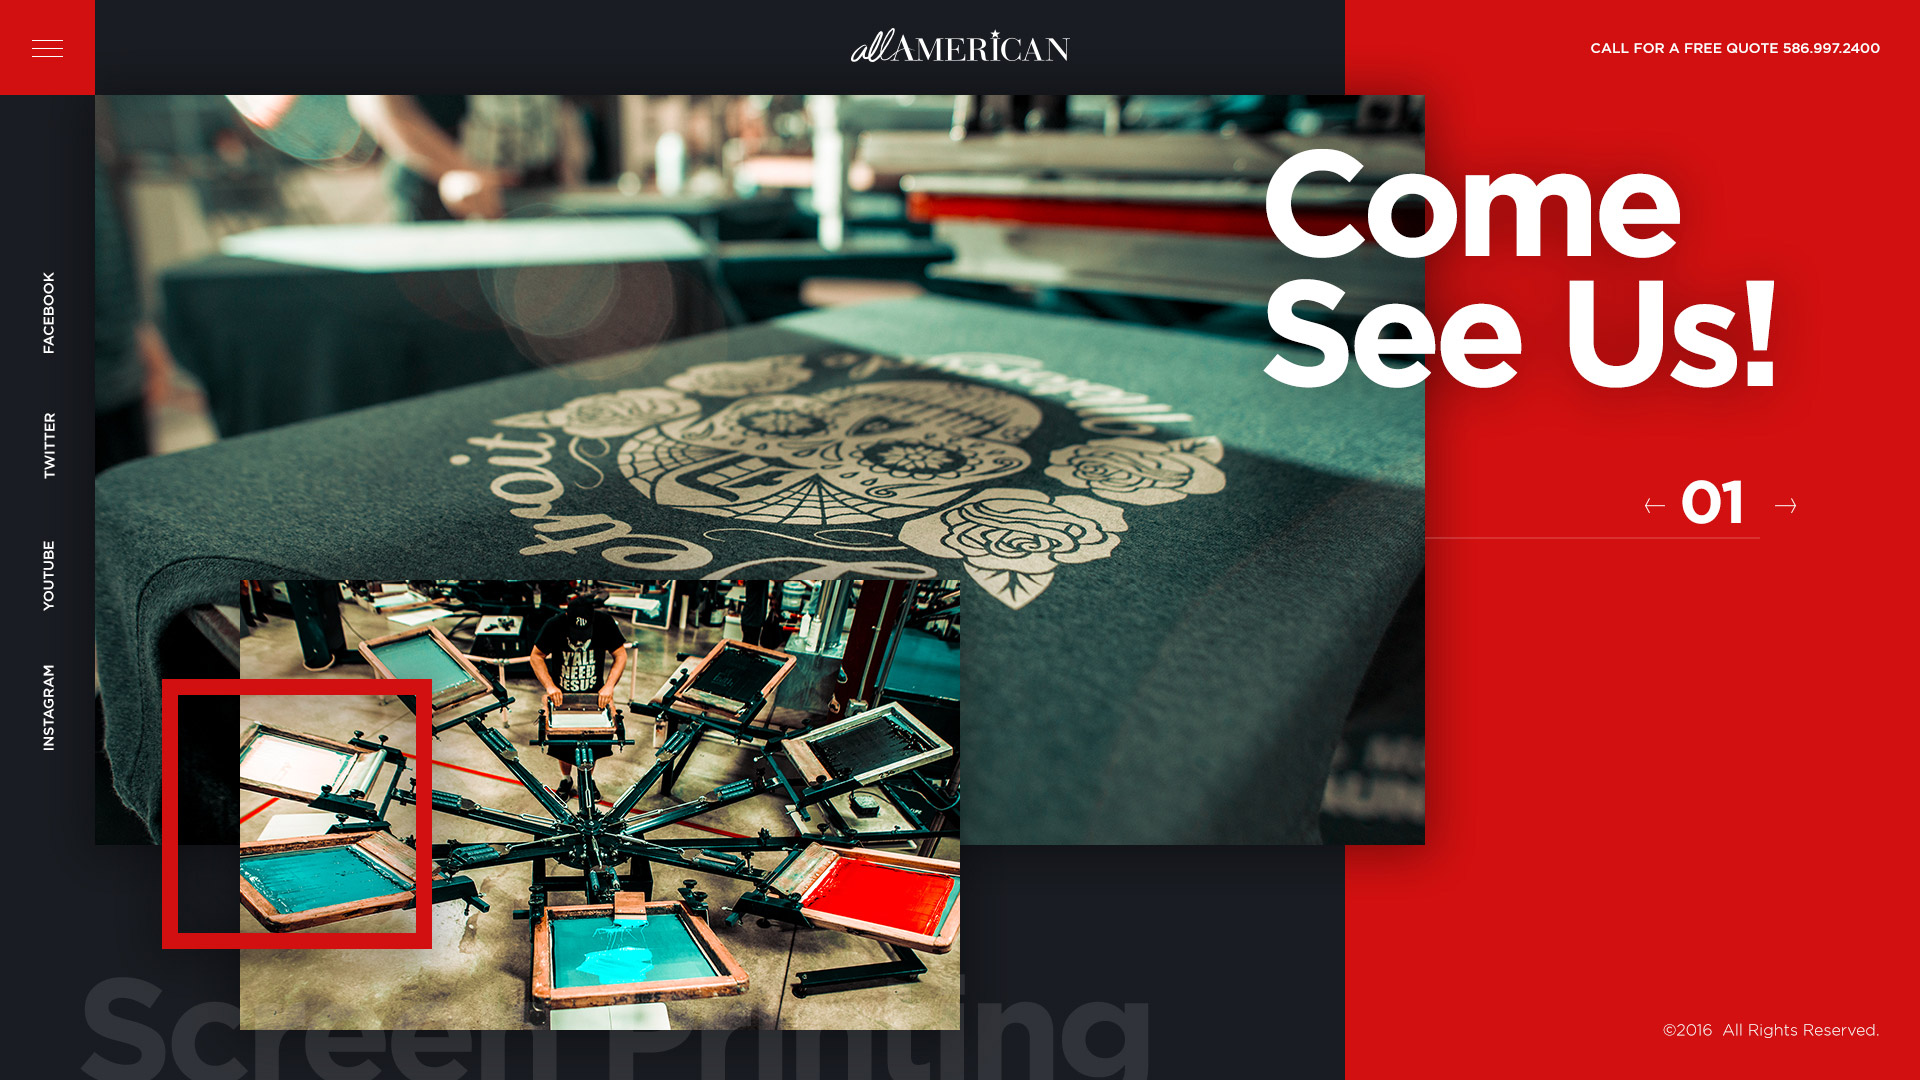 All American Screen Printing & Embroidery Website Design Preview